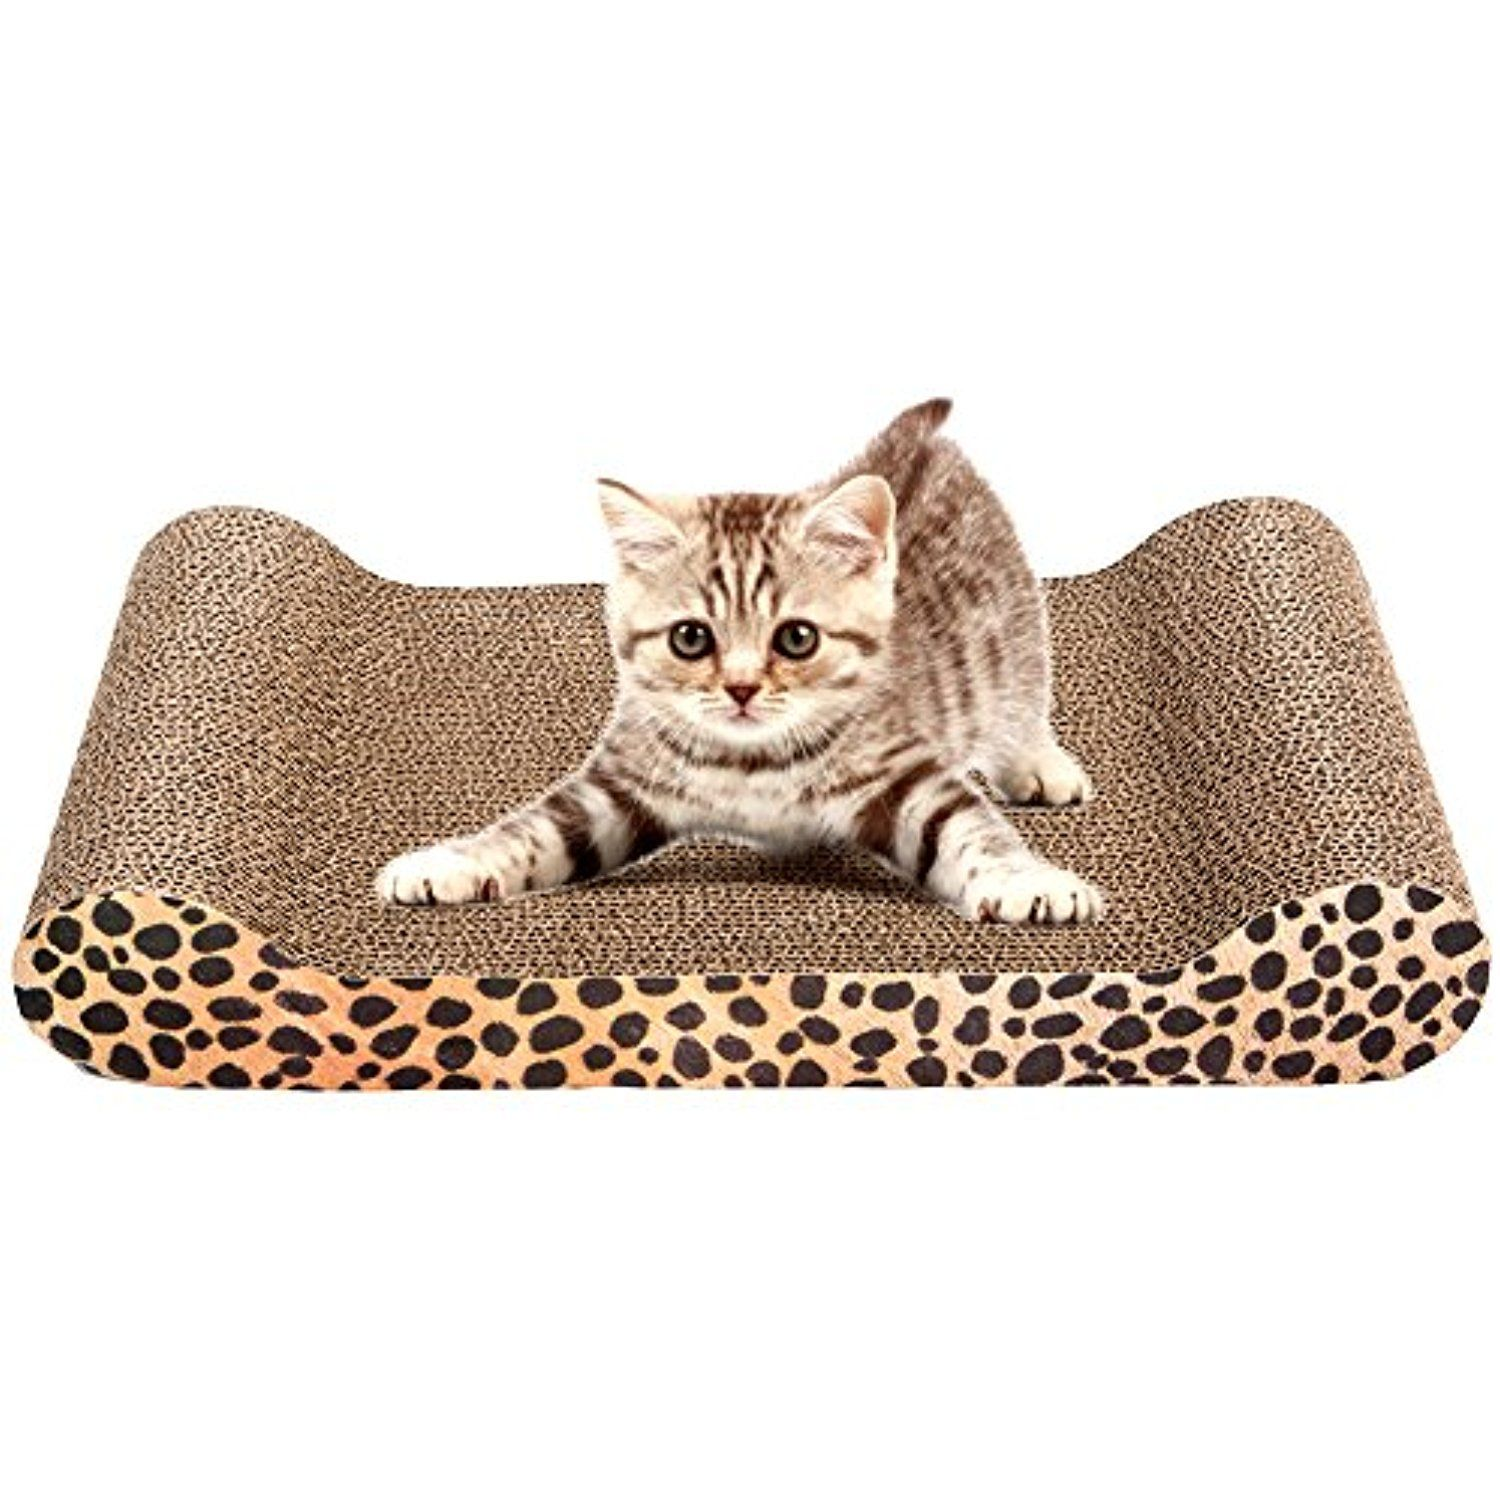 Cat Scratcher Lounge Couch Kitty Corrugated Scratching Pad Sofa Bed Protect  Furniture Includes Catnip U003e